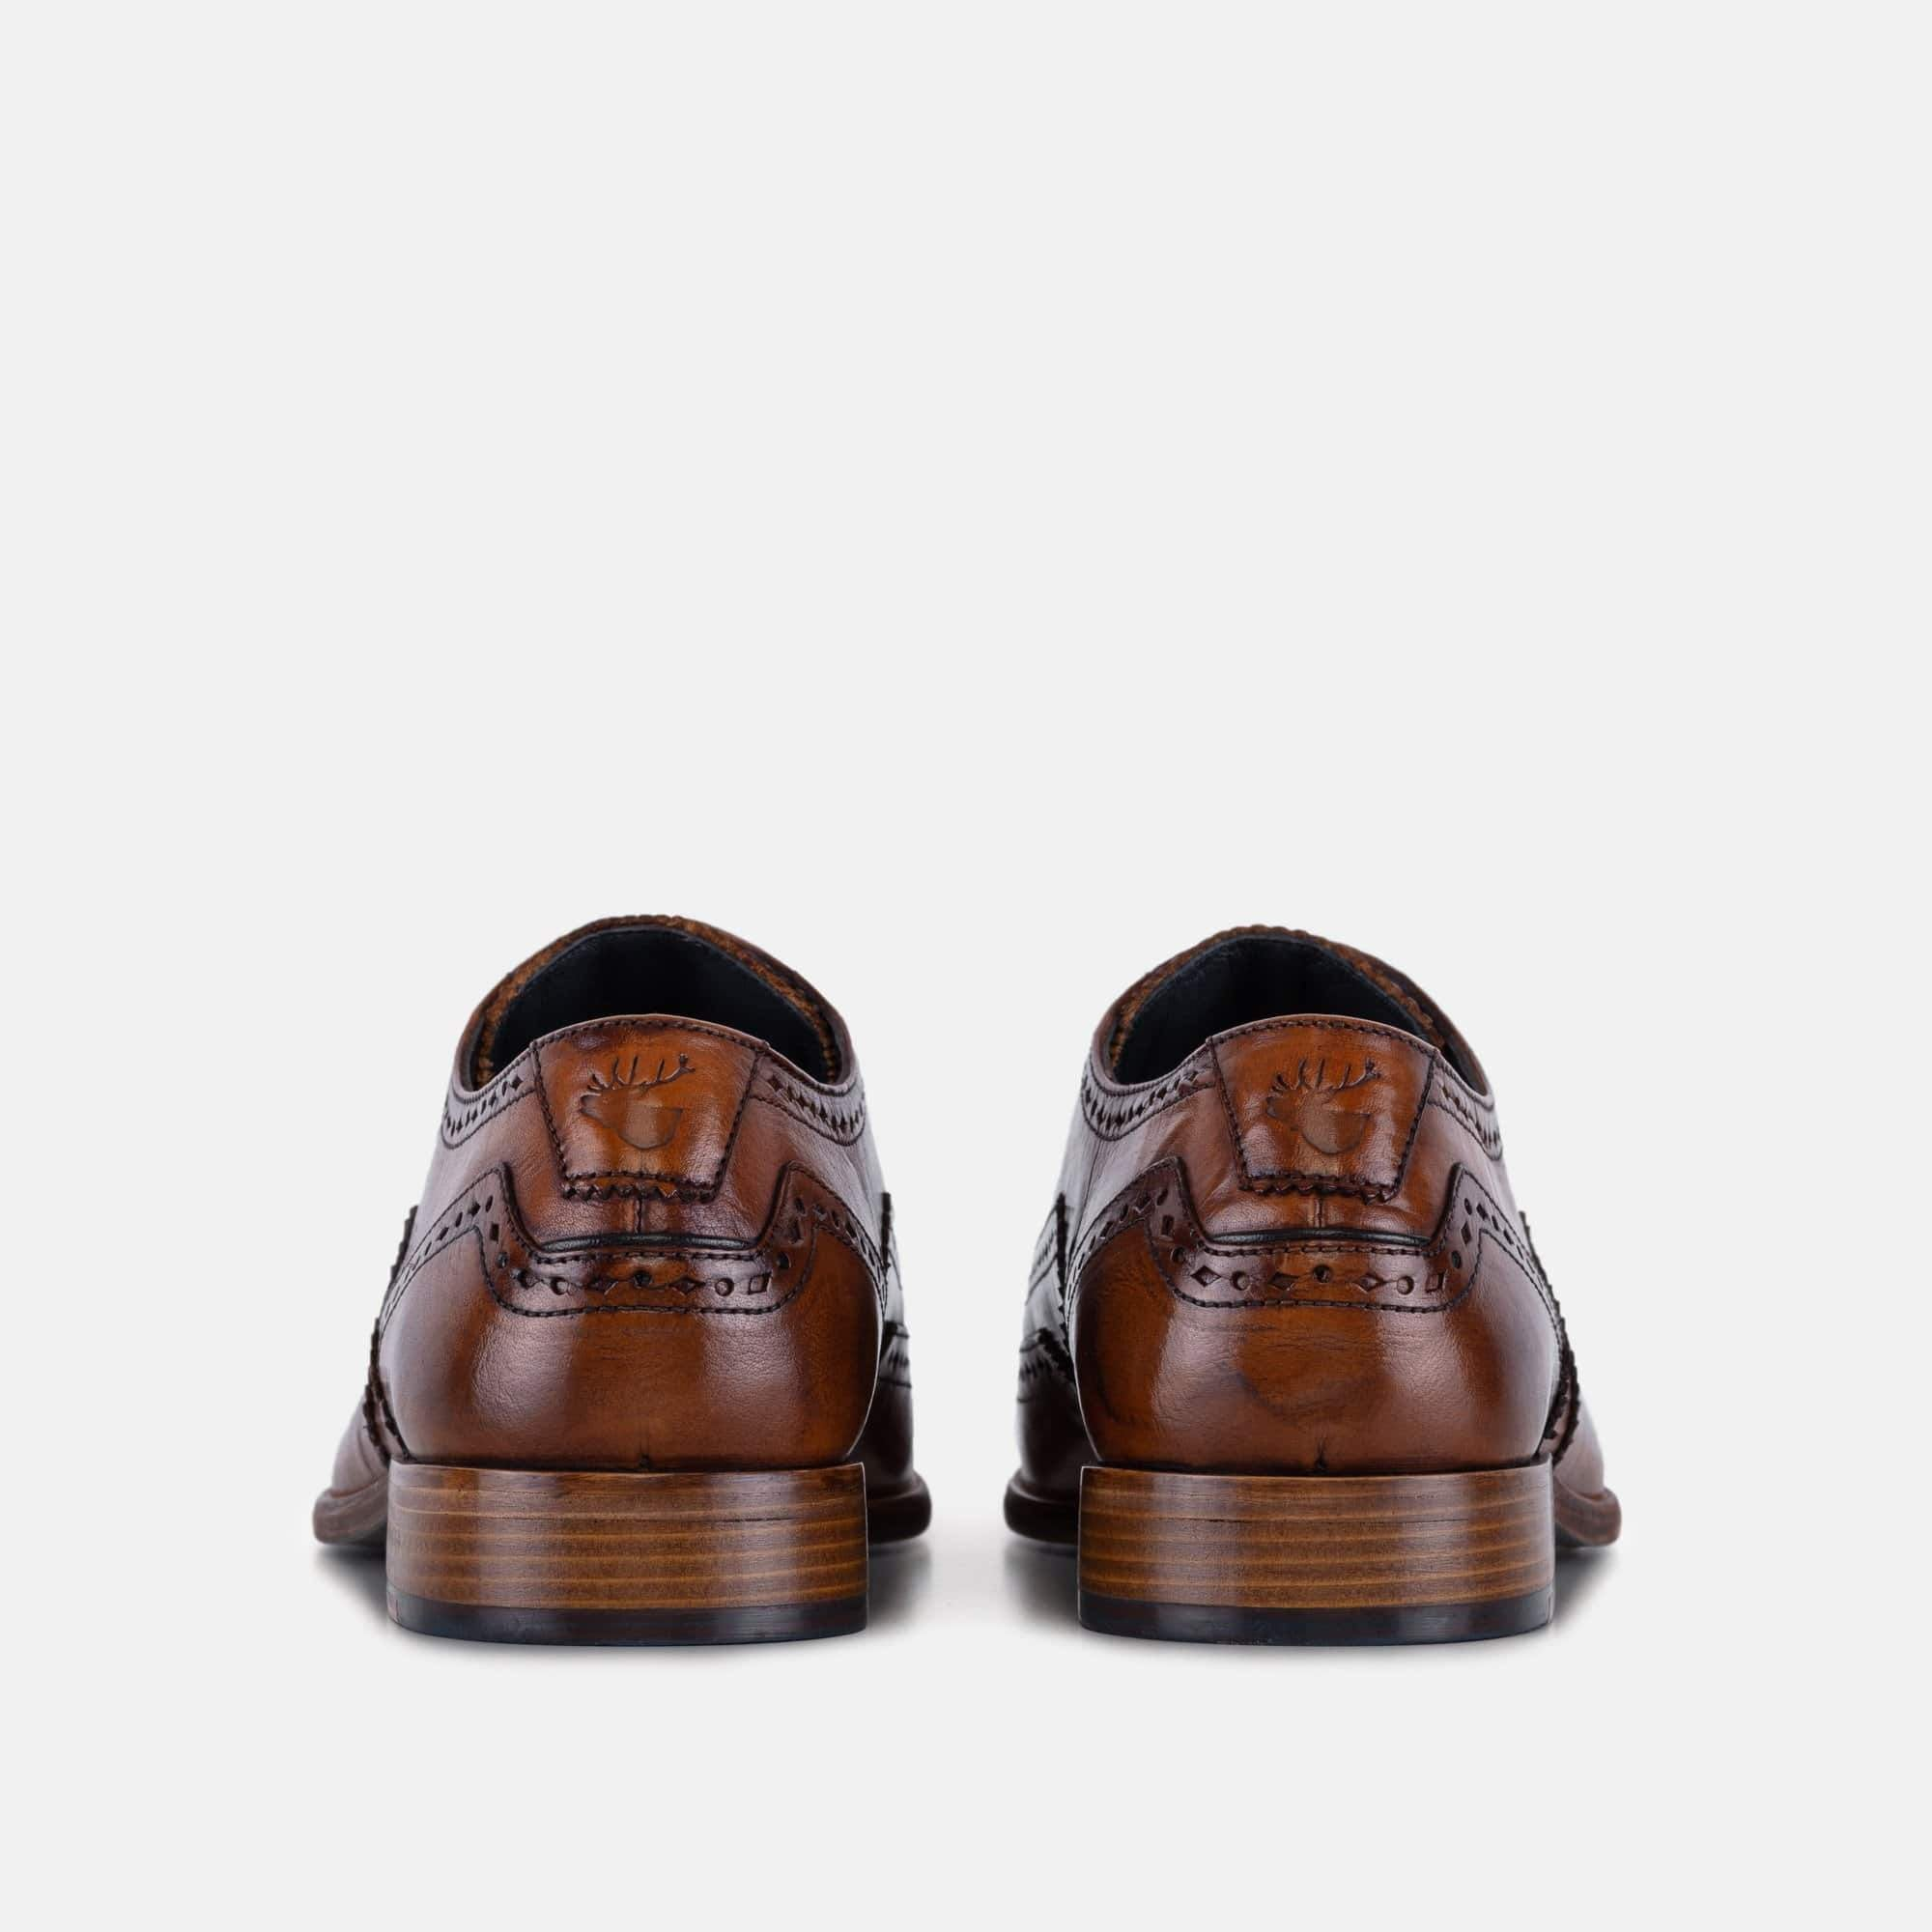 Tan derby brogues for men with stag logo debossed to the heel